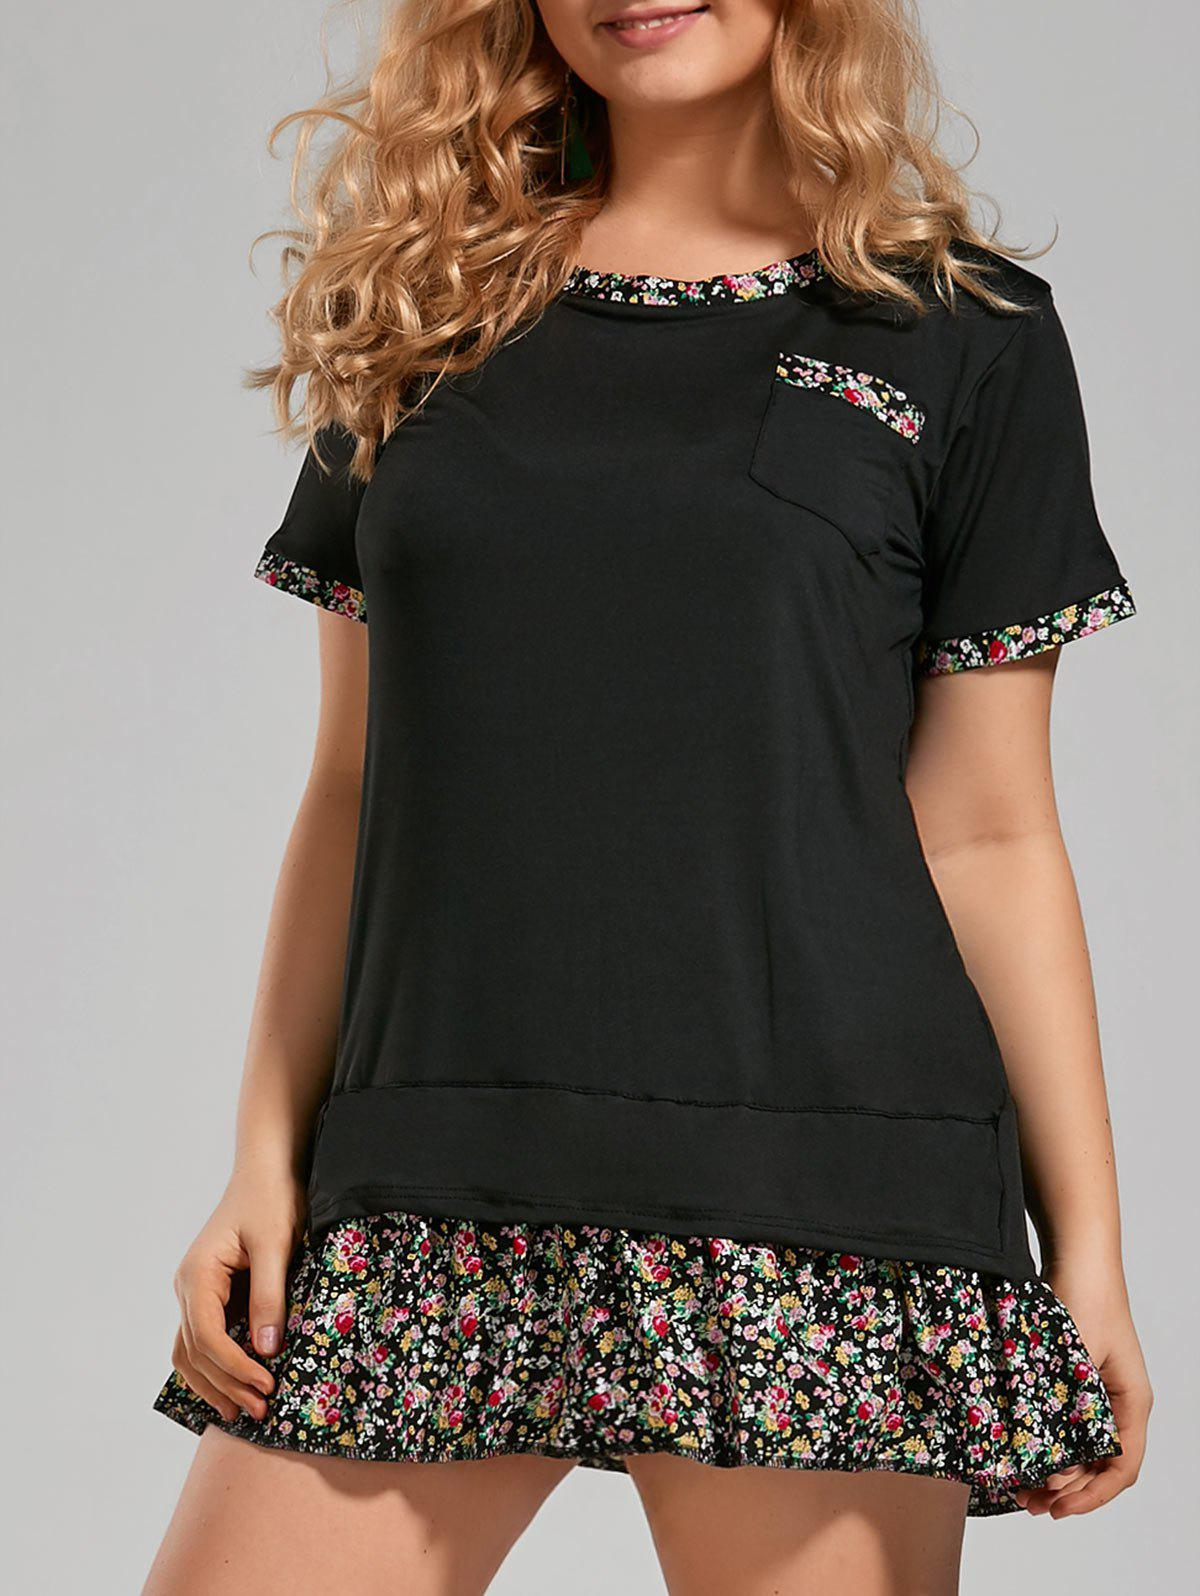 Ruffle Floral Printed Plus Size Tunic TopWOMEN<br><br>Size: 4XL; Color: BLACK; Material: Cotton,Cotton Blends; Shirt Length: Long; Sleeve Length: Short; Collar: Scoop Neck; Style: Casual; Season: Spring,Summer; Pattern Type: Floral; Weight: 0.2600kg; Package Contents: 1 x Top;